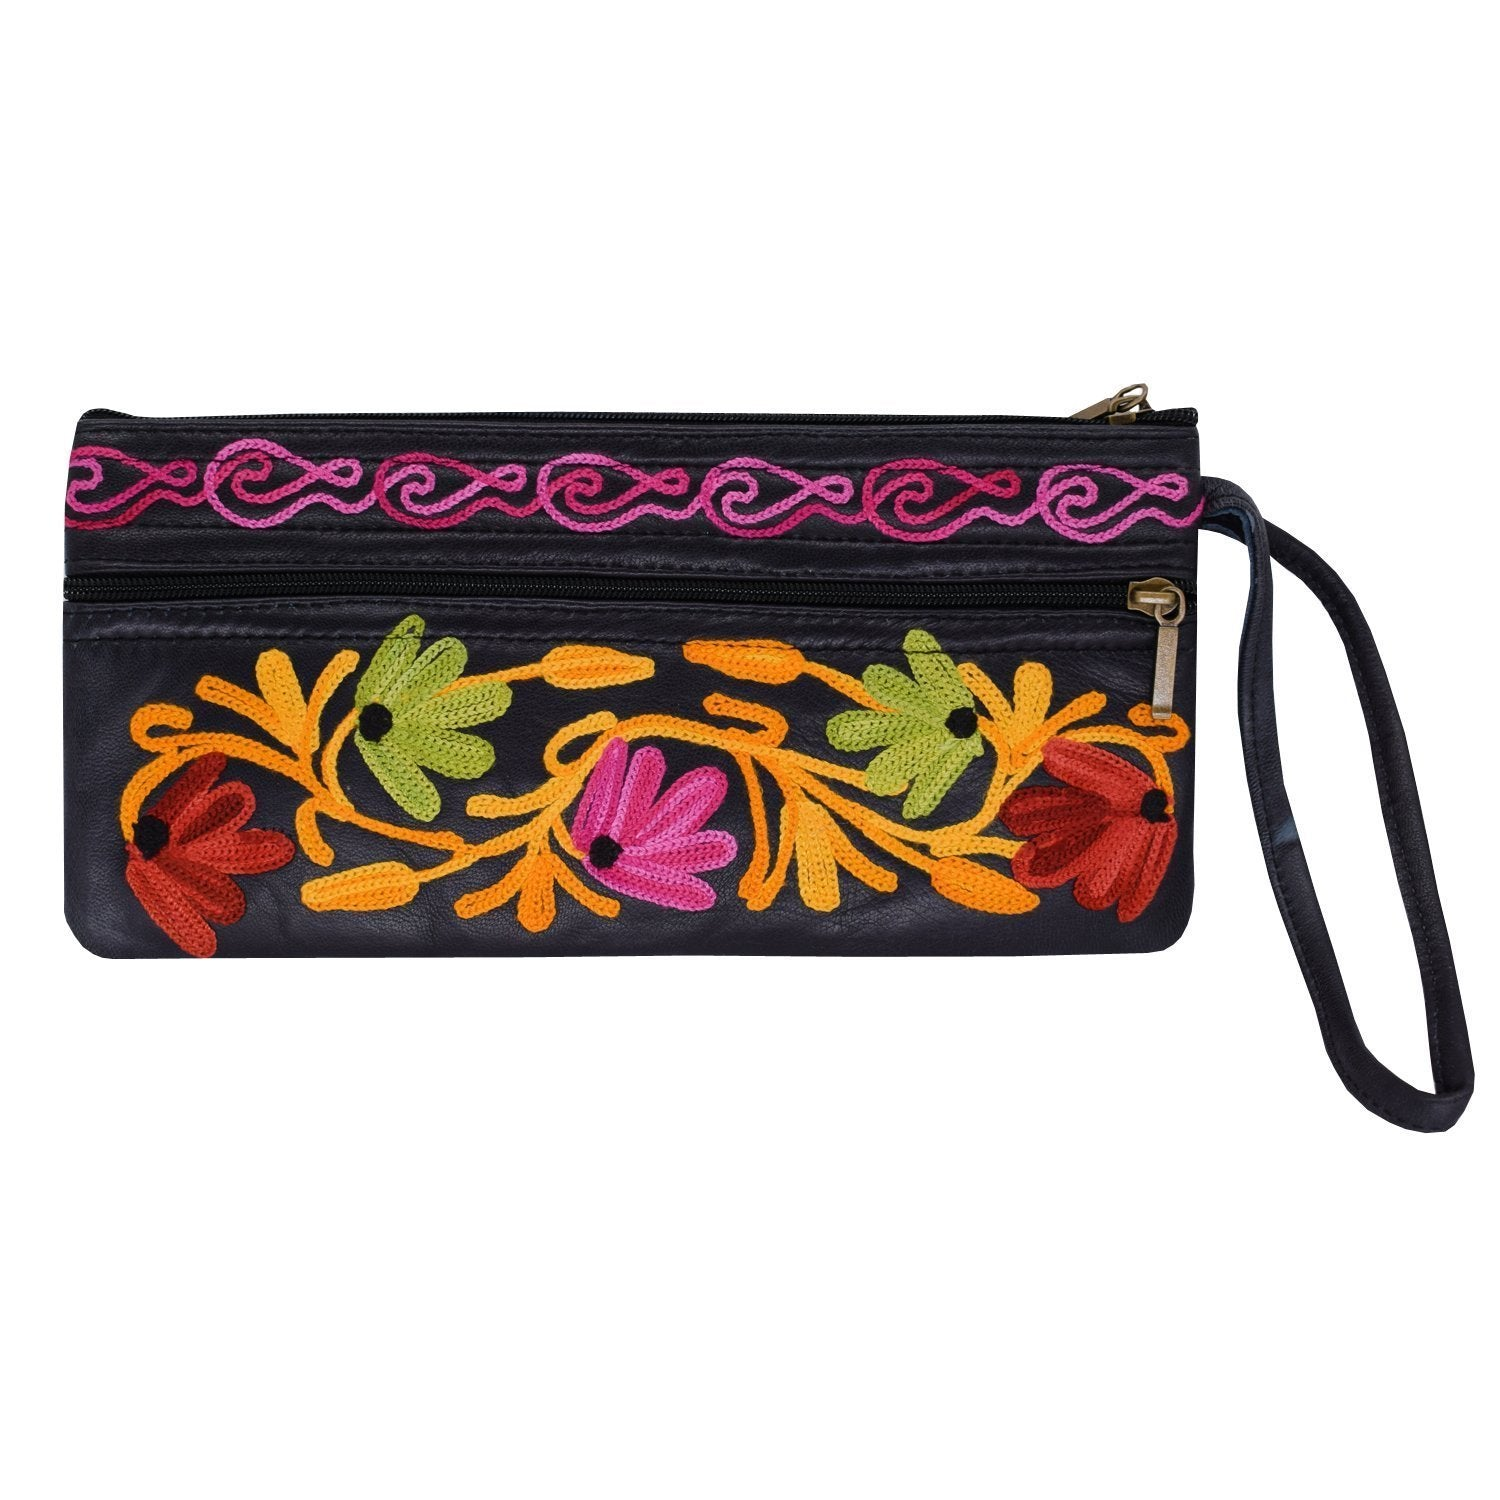 Kashmiri pure Leather Multipurpose Pouch (Black) - Bagaholics Gift